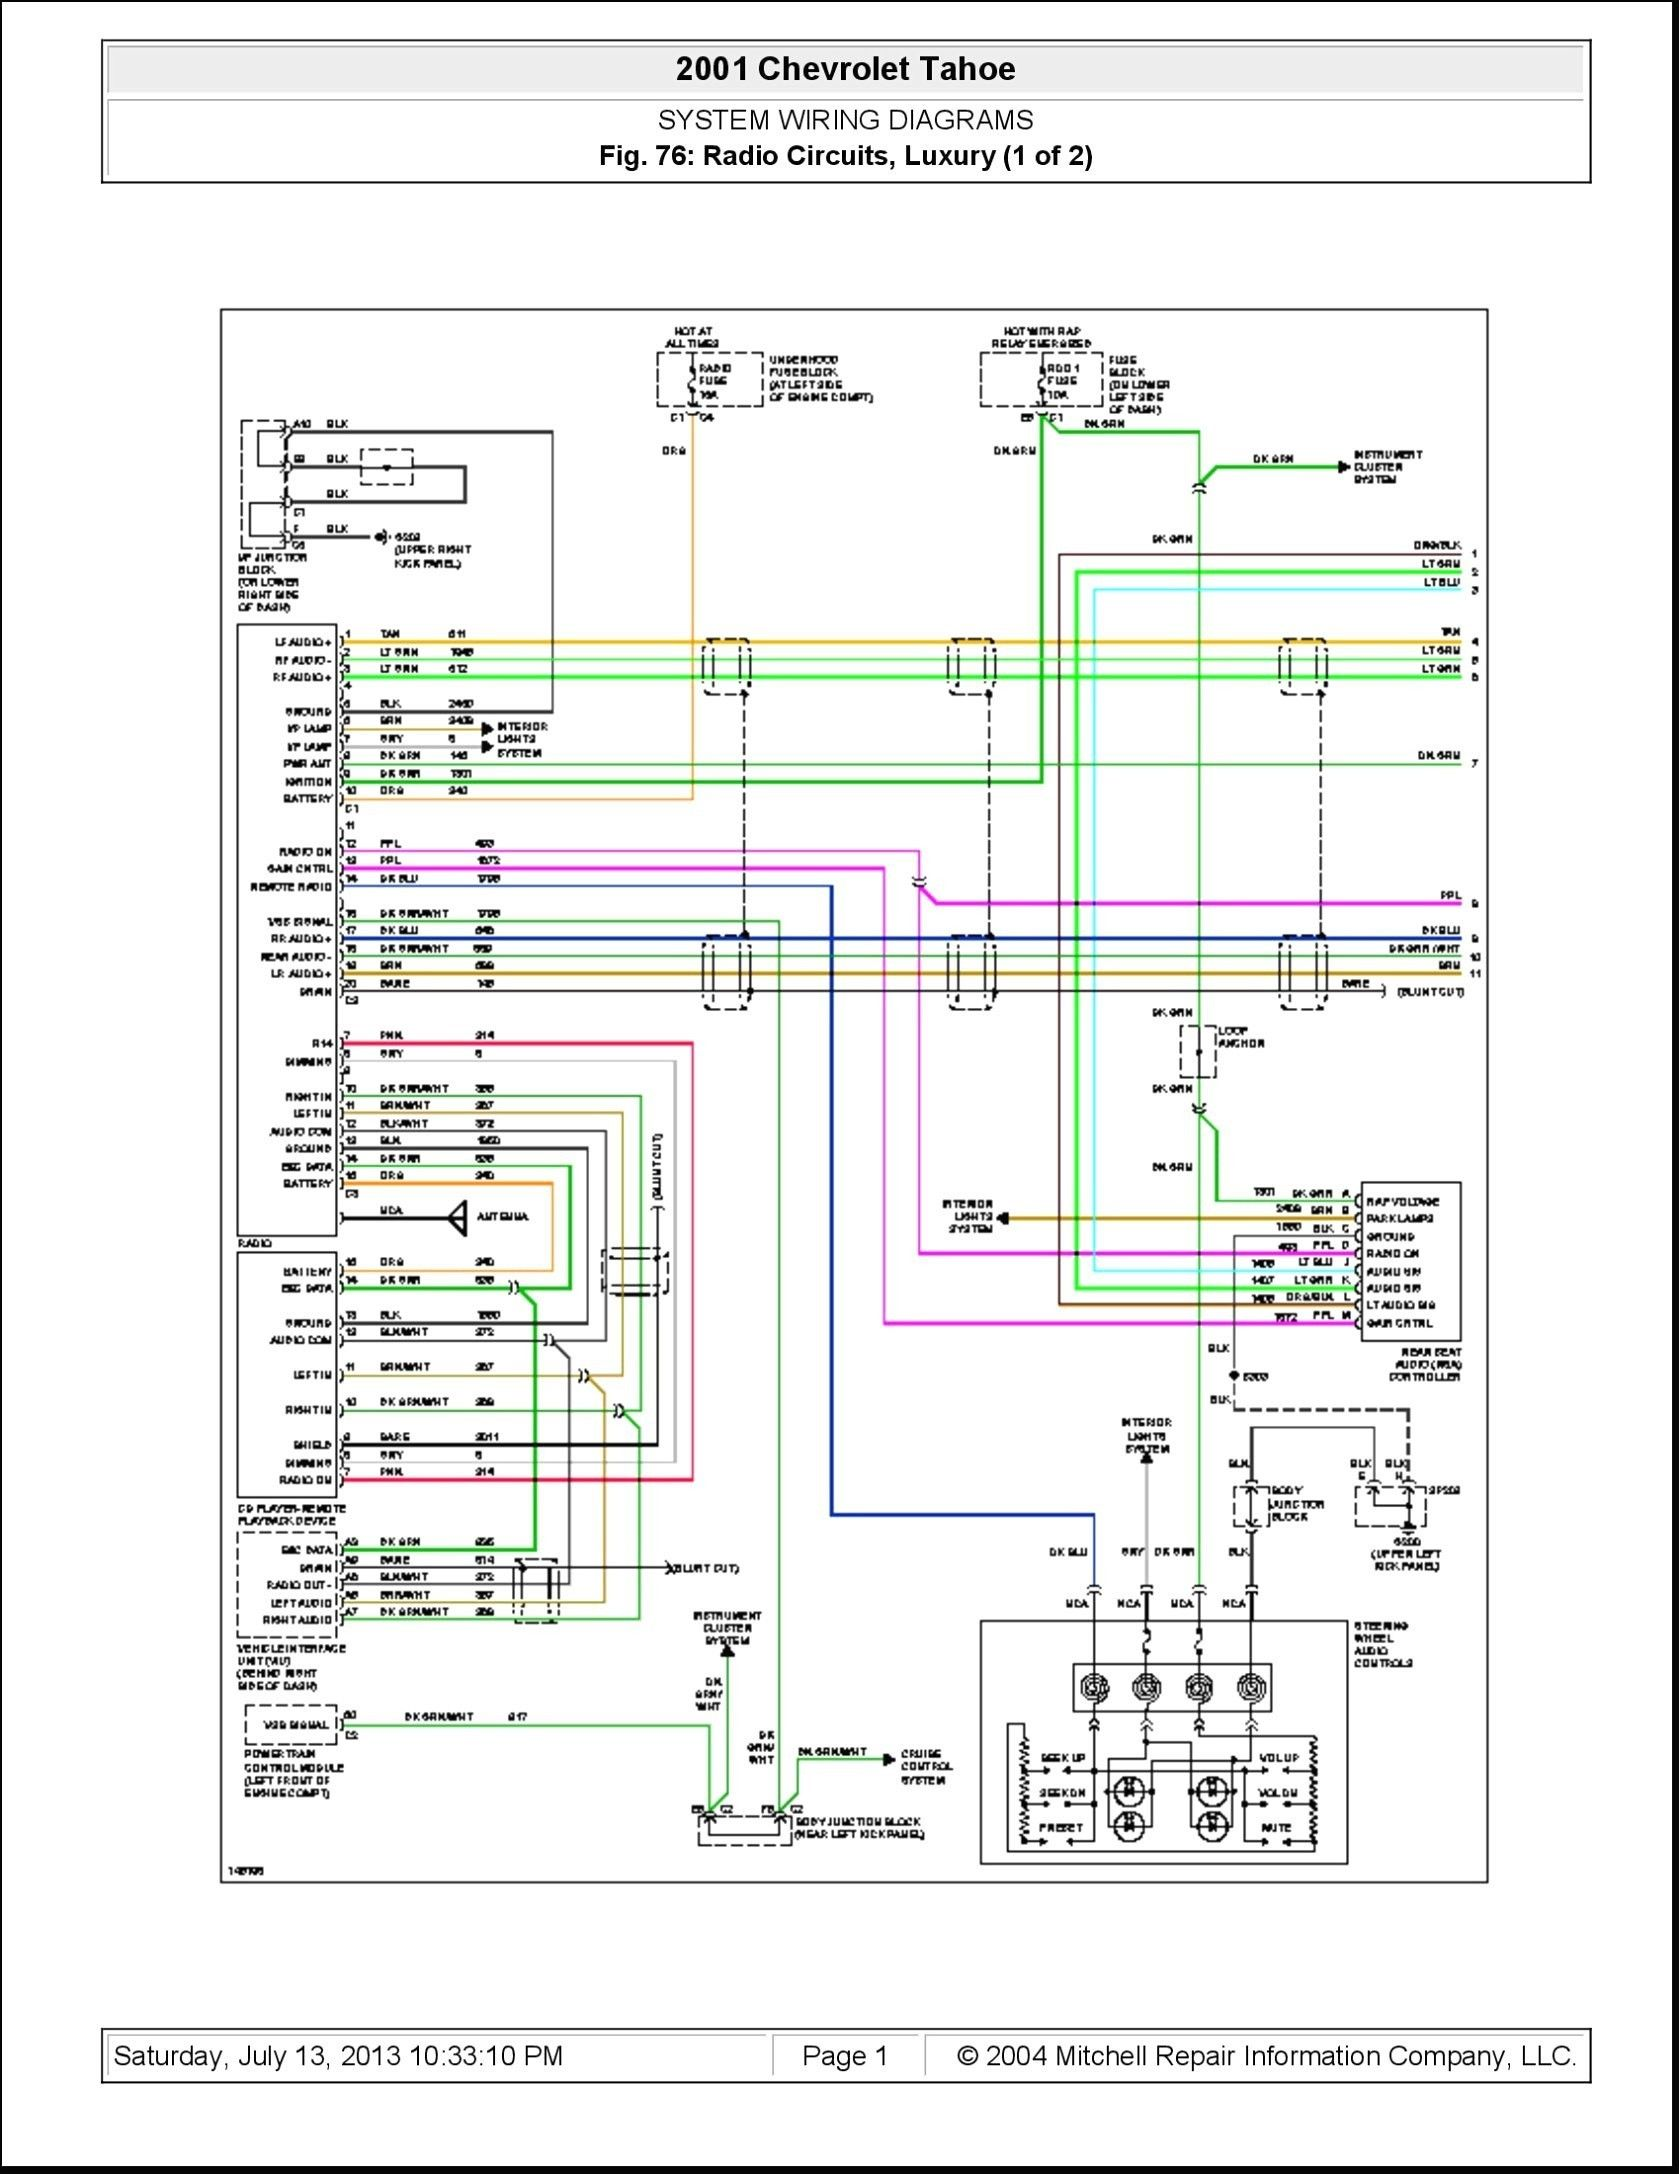 2001 Lexus Gs300 Radio Wiring Diagram Es300 Stereo Stunning In 2005 Ford Five Hundred 19c 11 Diagram Chevy Impala Car Stereo